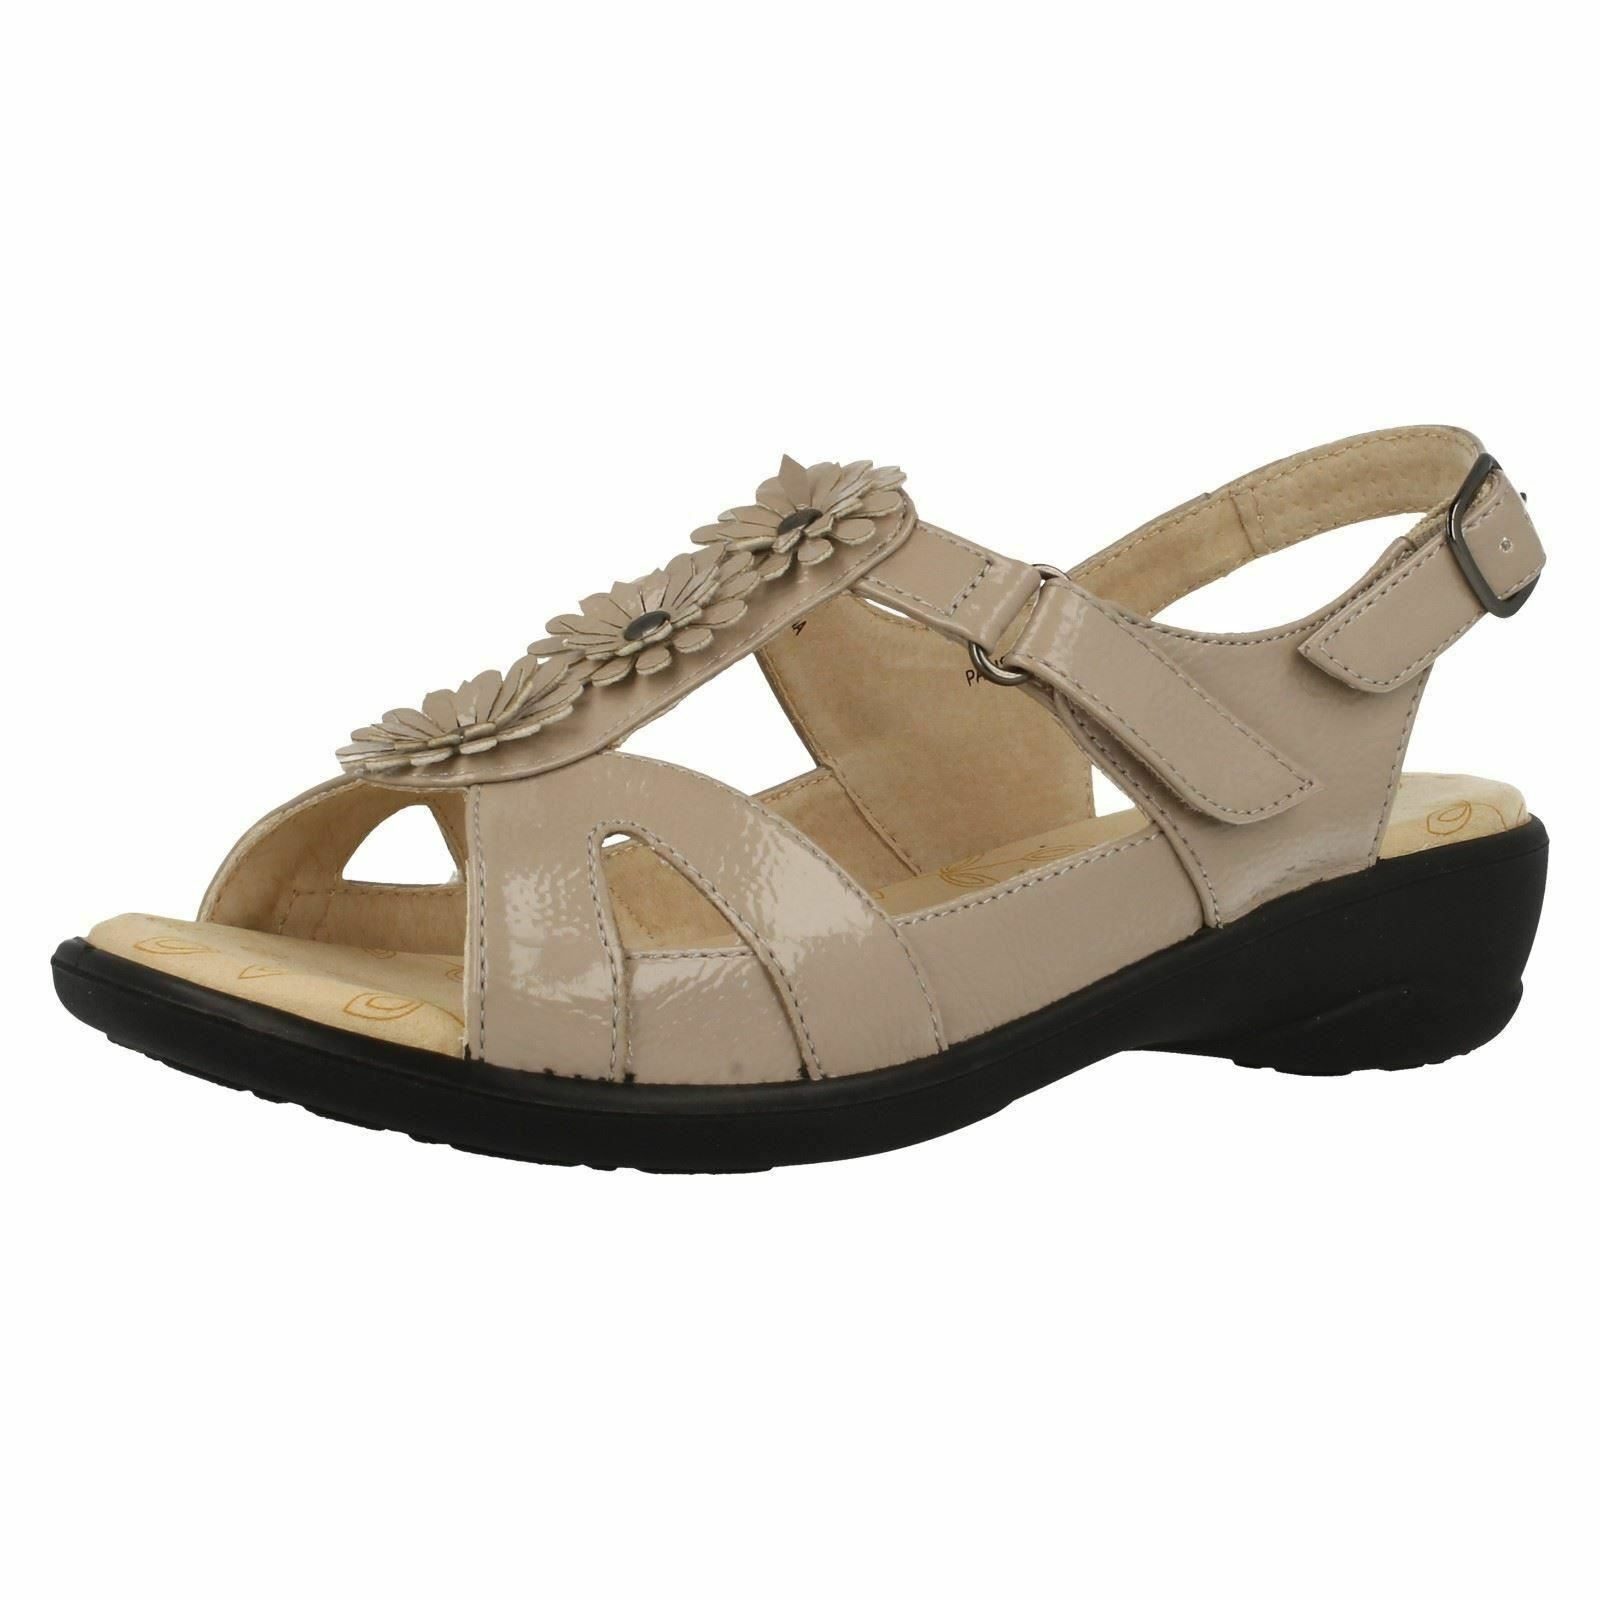 LADIES PADDERS PARIS COMFORTABLE CASUAL CASUAL CASUAL FLAT WIDE FIT OPEN TOE SUMMER SANDALS 5cac88